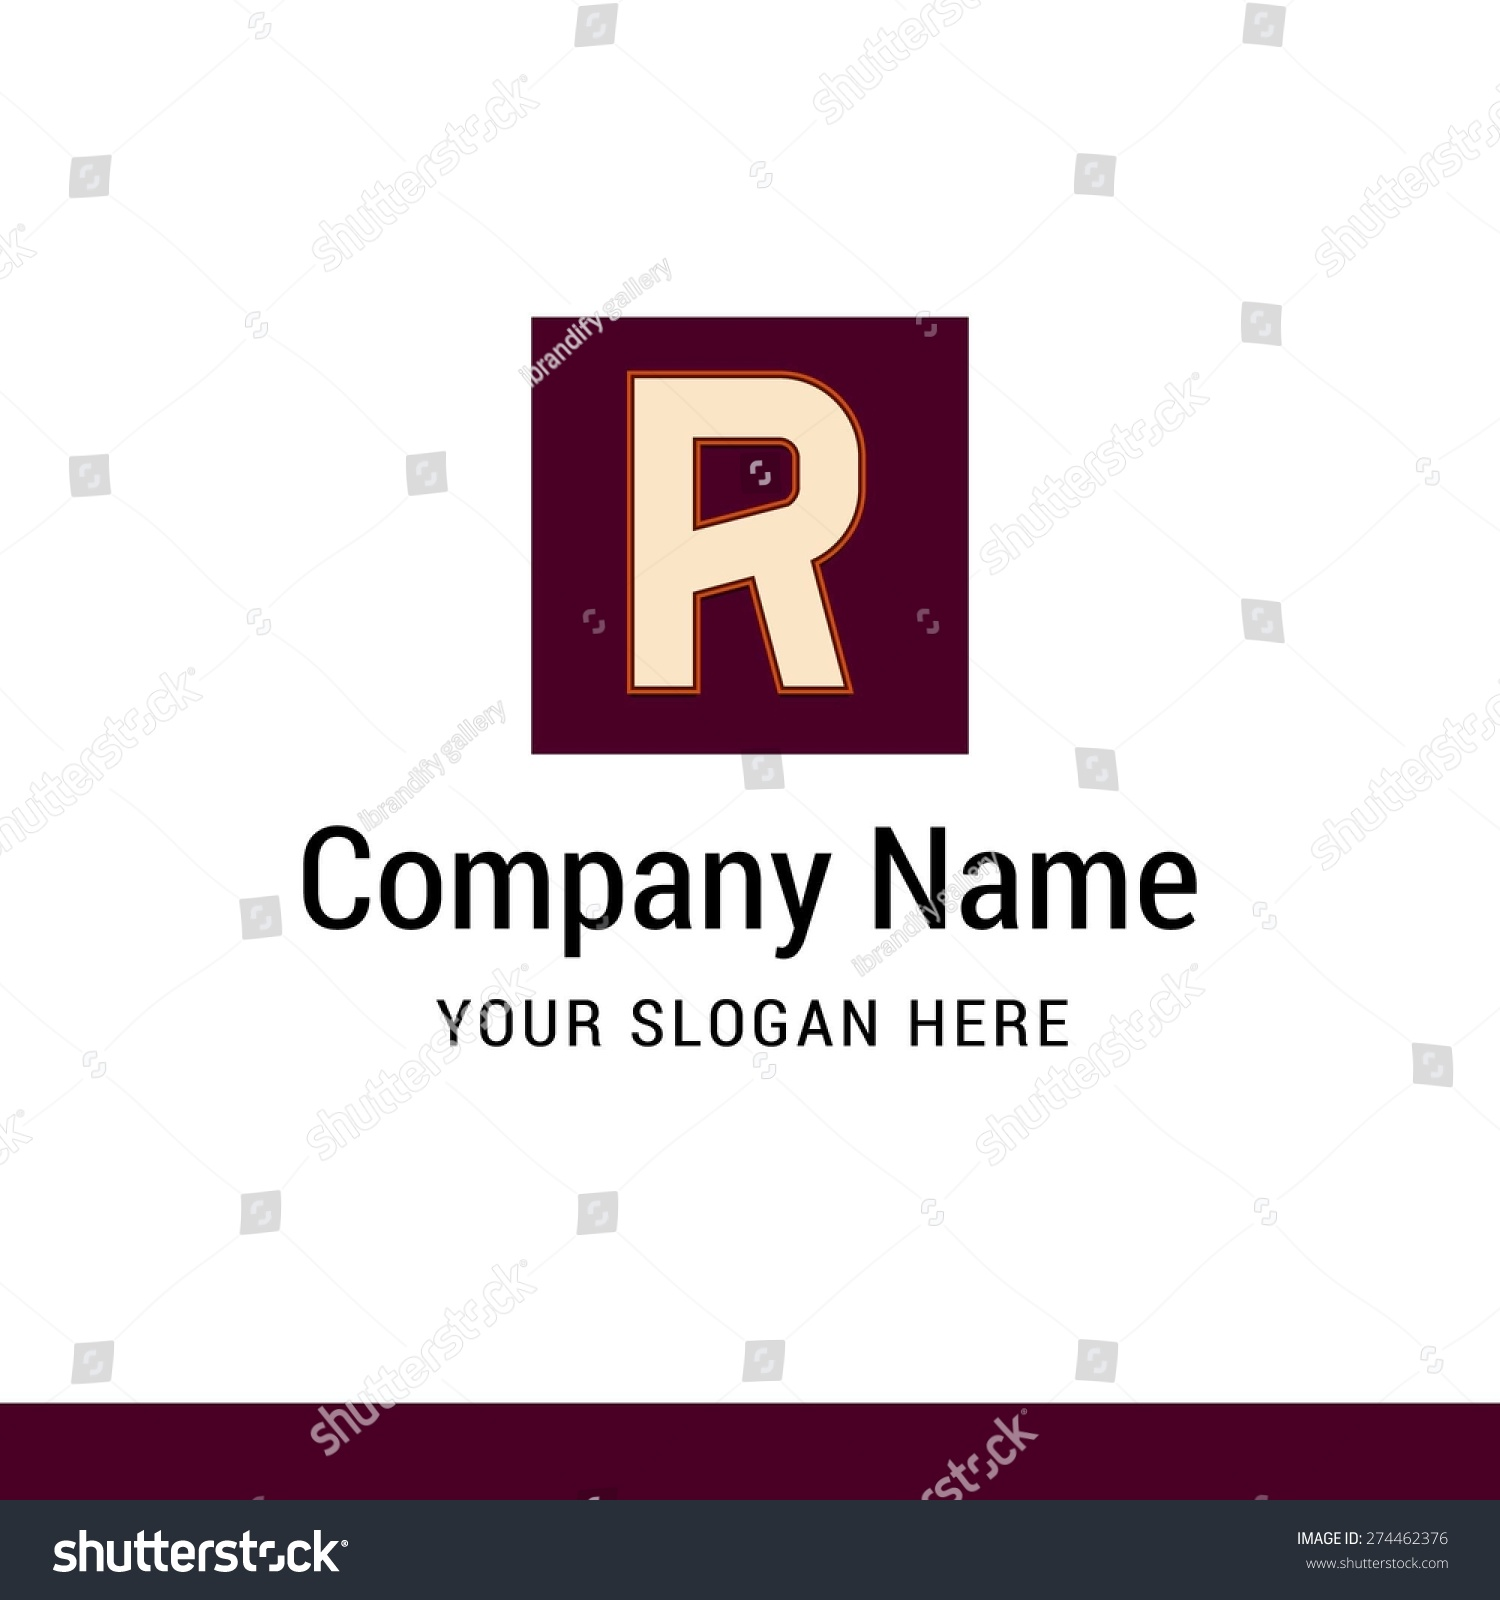 Letter R logo icon design   alphabet letter   Stylish Colorful typographic  template elements   shiny. Letter R Logo Icon Design Alphabet Stock Vector 274462376